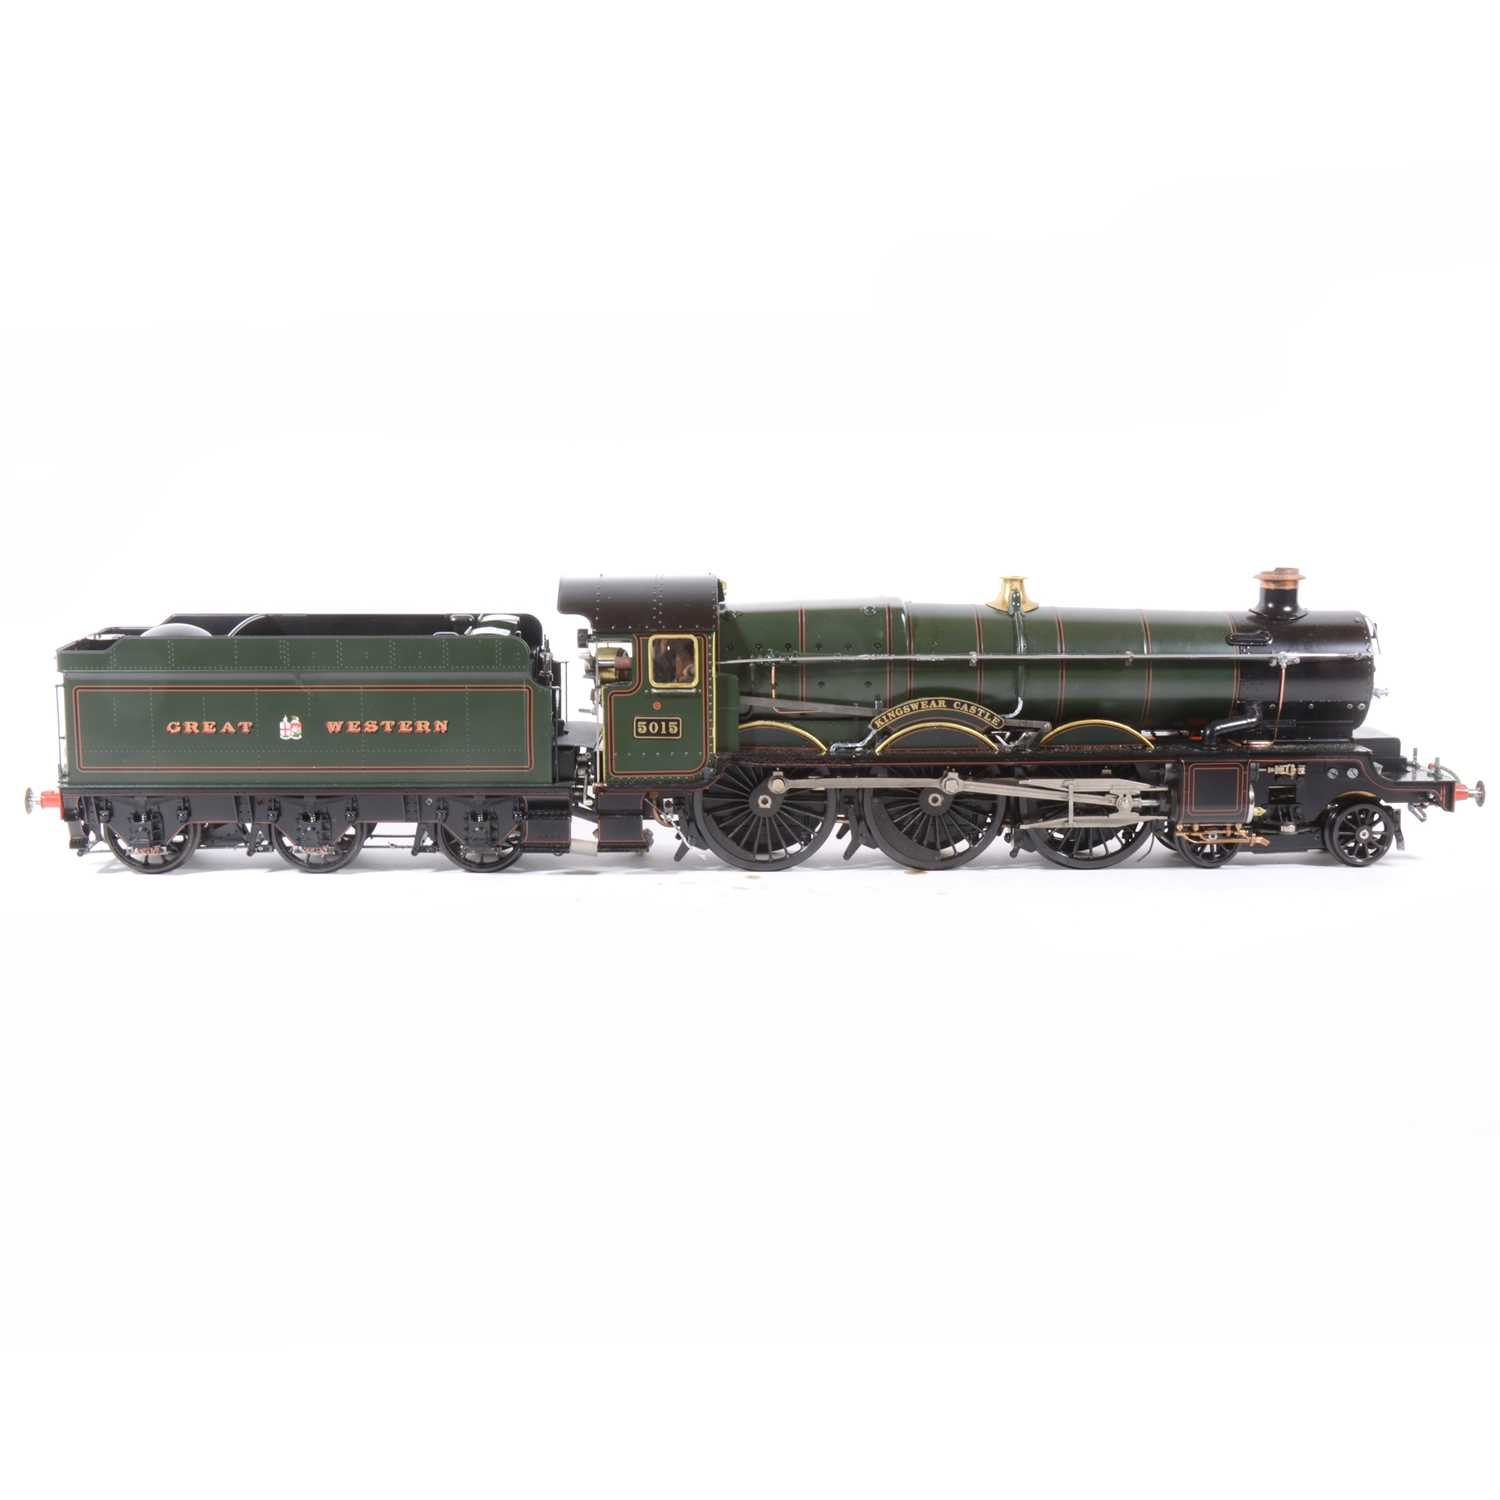 Lot 41 - Aster Hobby live steam, gauge 1 / G scale, 45mm locomotive and tender, 'Kingswear Castle' 4-6-0 GW no.5015, green, in carry case and booklets.